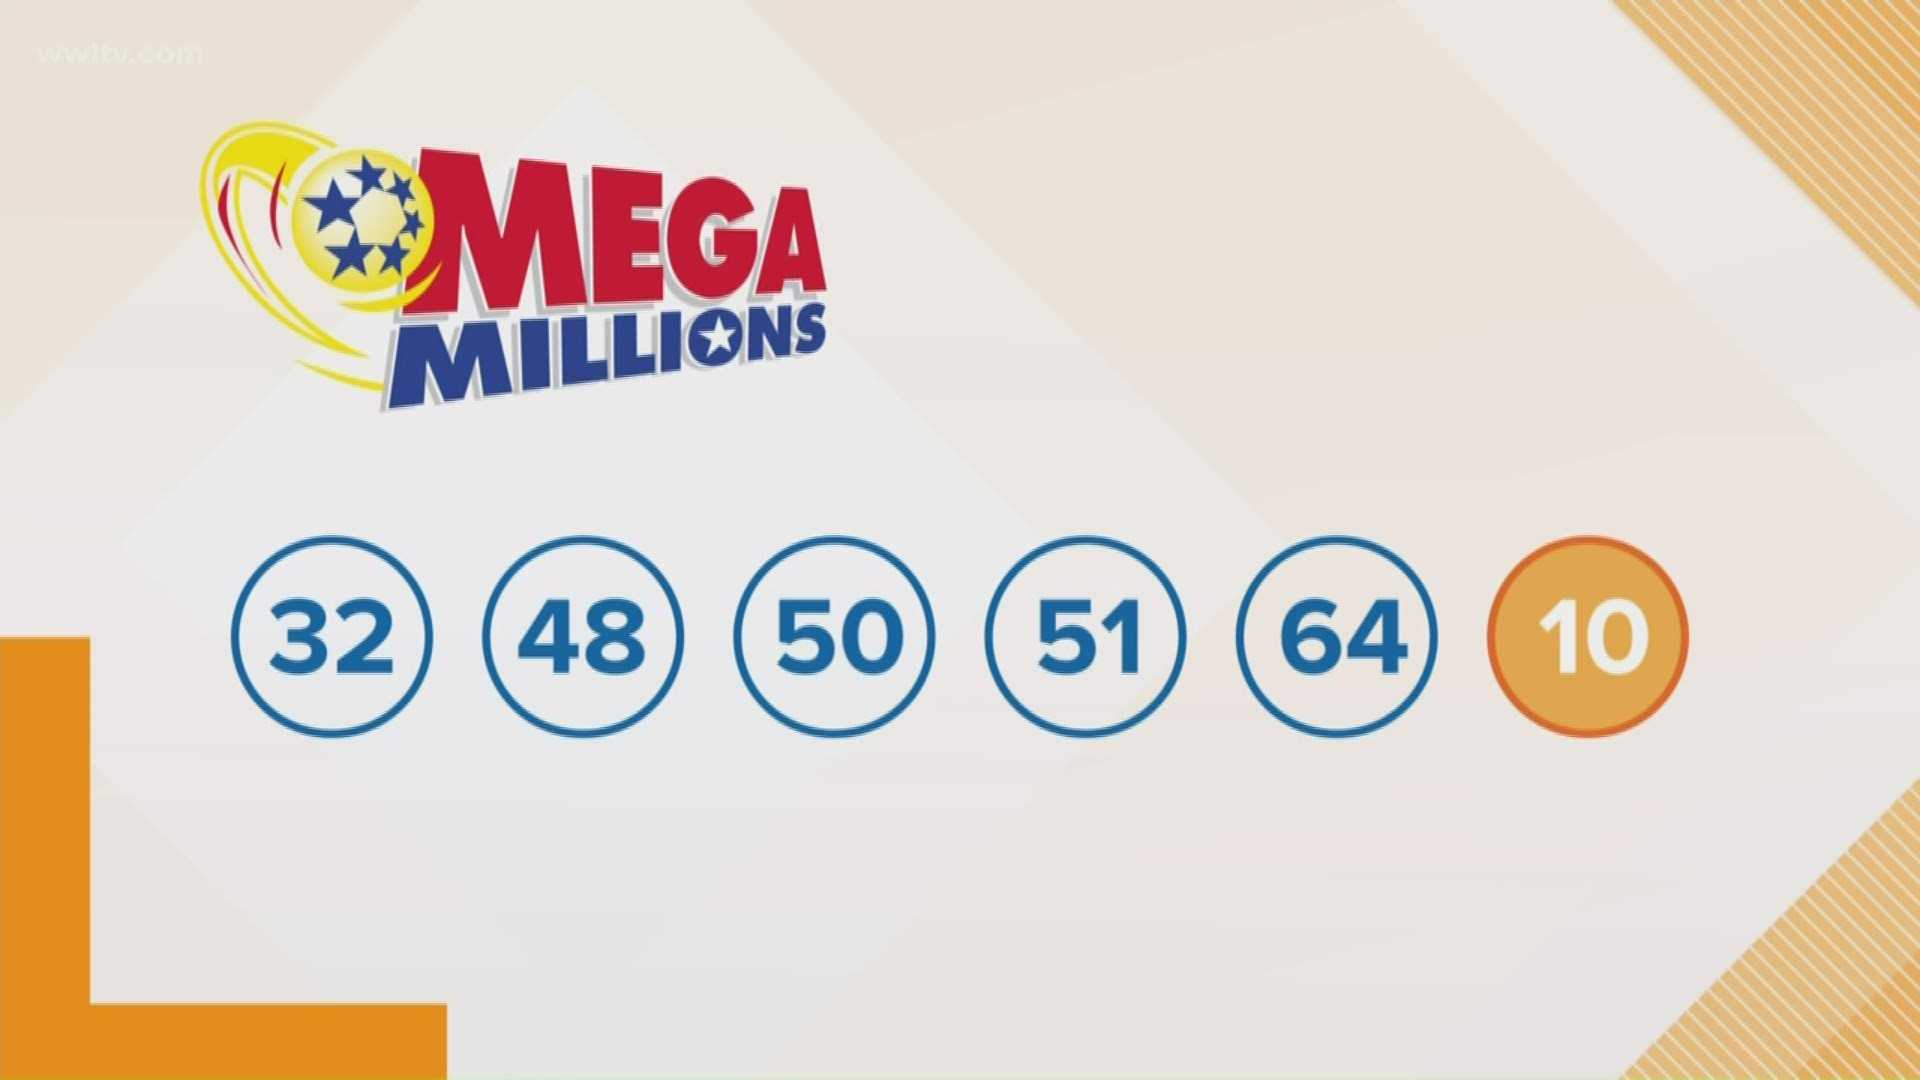 Megamillions lottery - how to play from russia